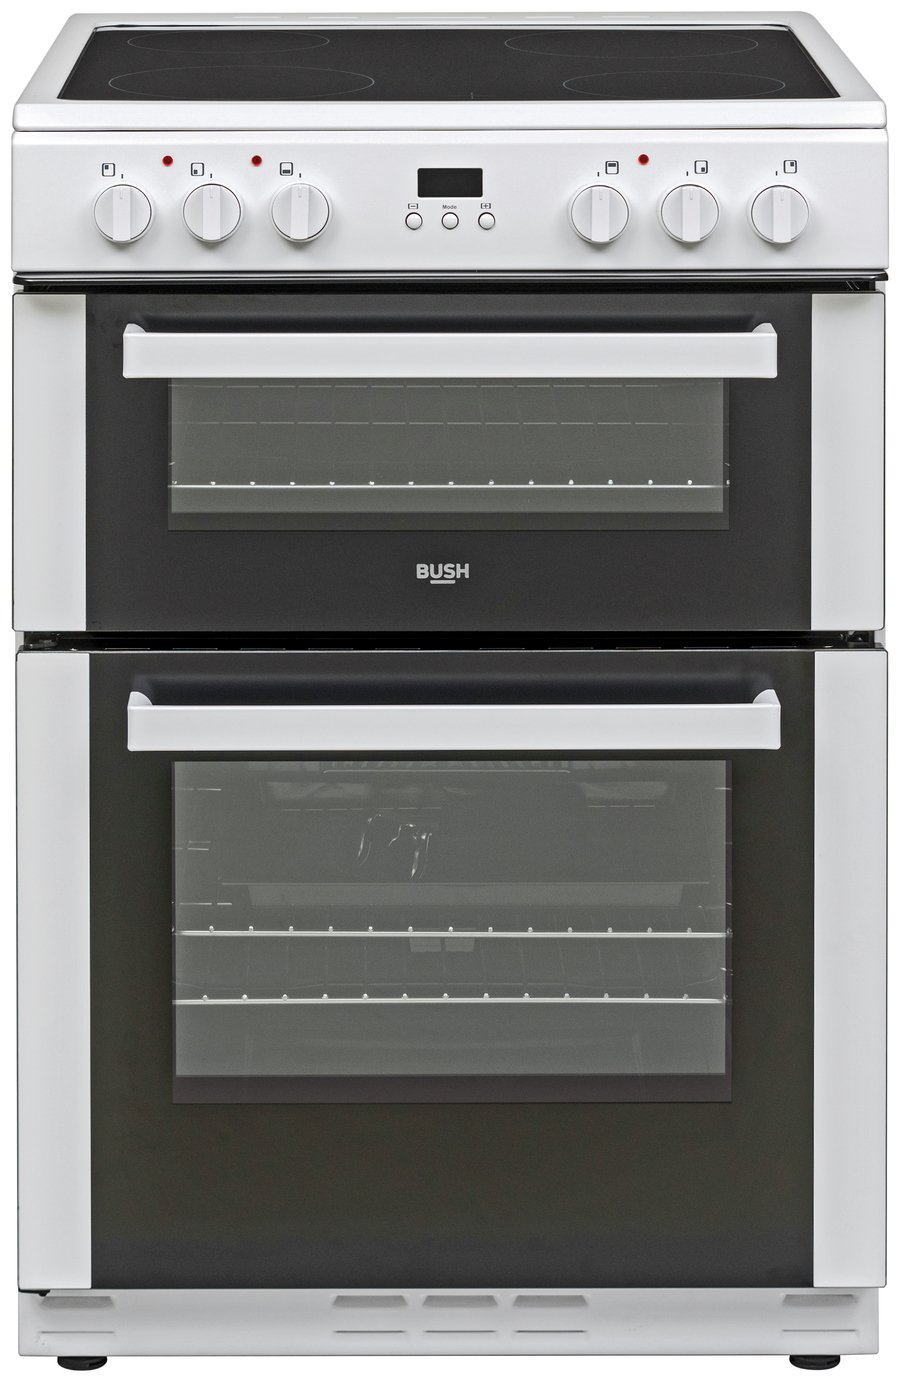 Bush BDBL60ELW 60cm Double Oven Electric Cooker - White Best Price, Cheapest Prices